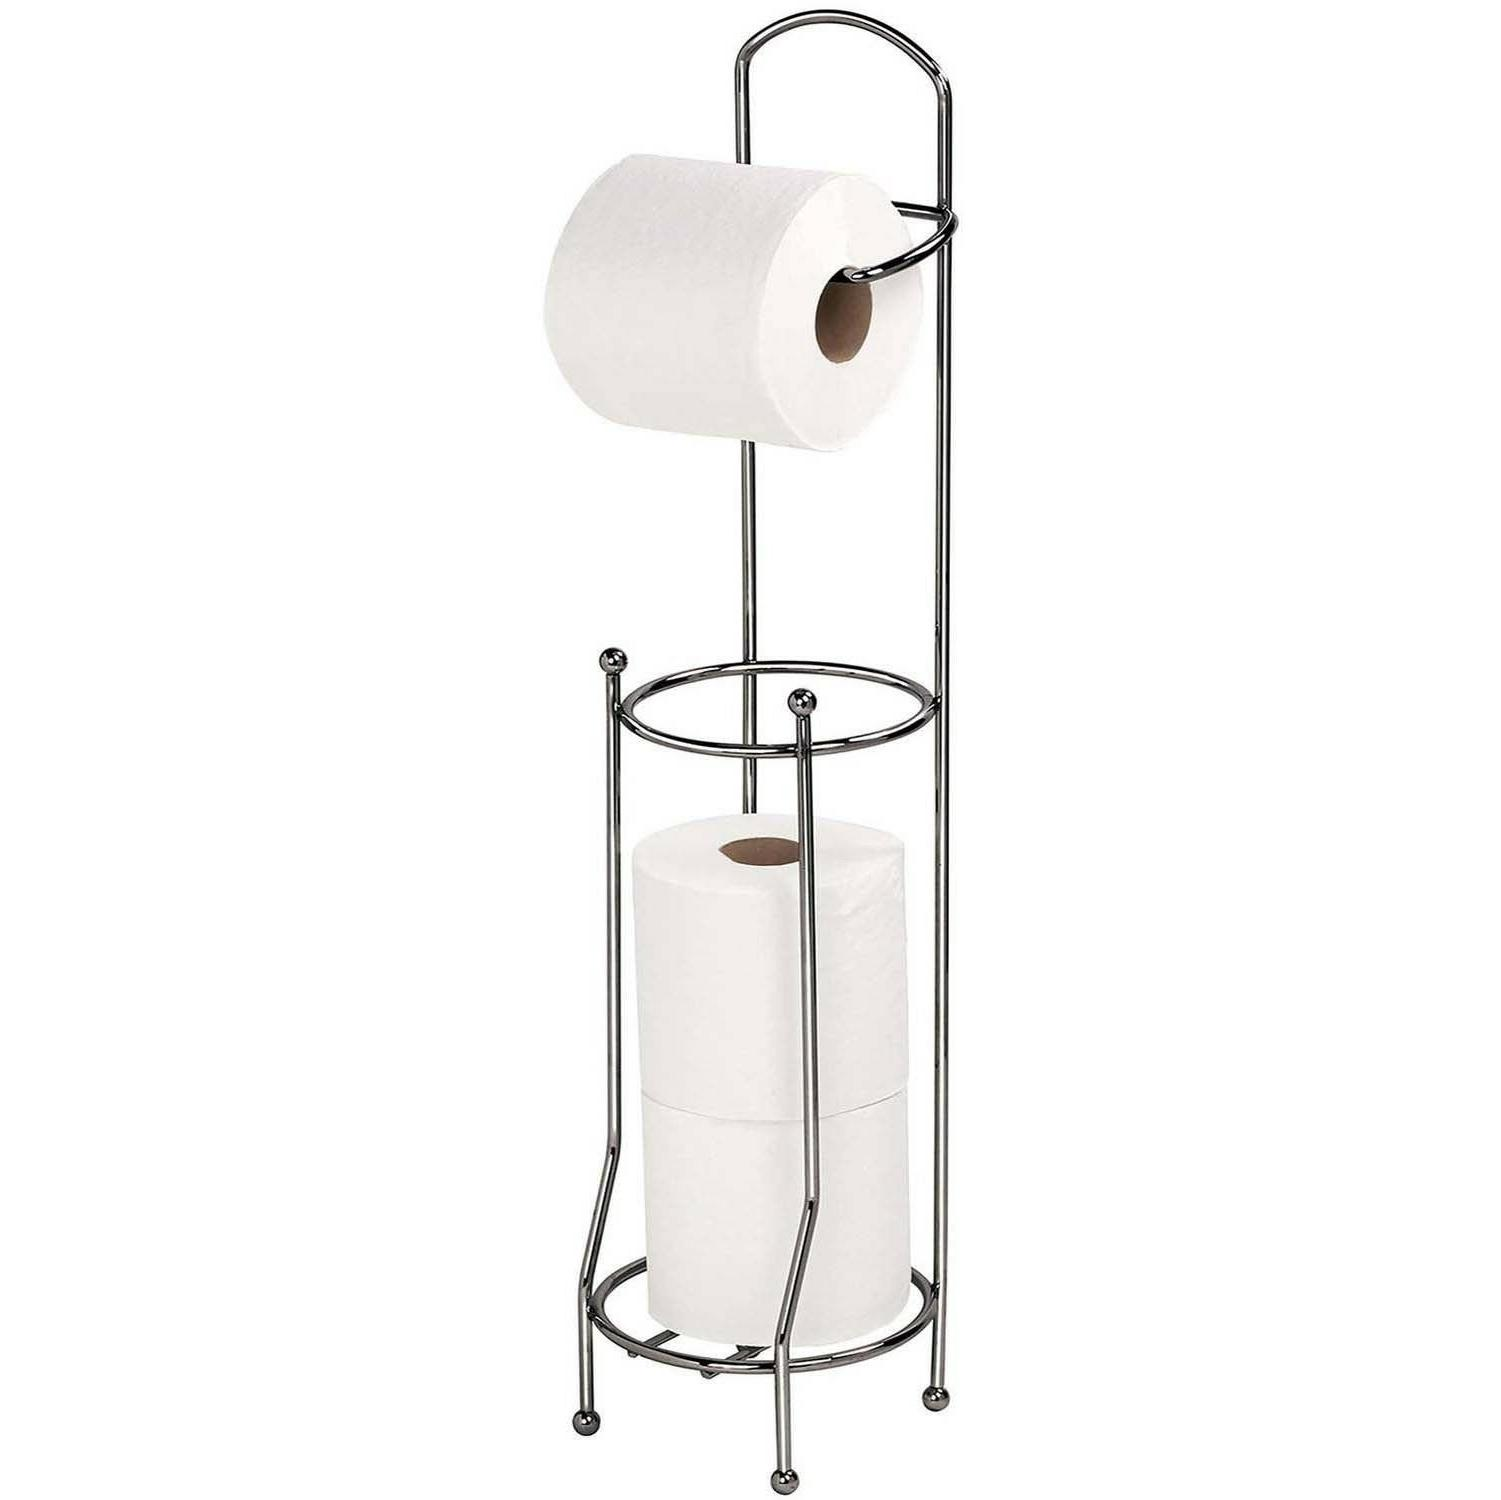 Toilet Roll Holder Stand Free Standing Storage